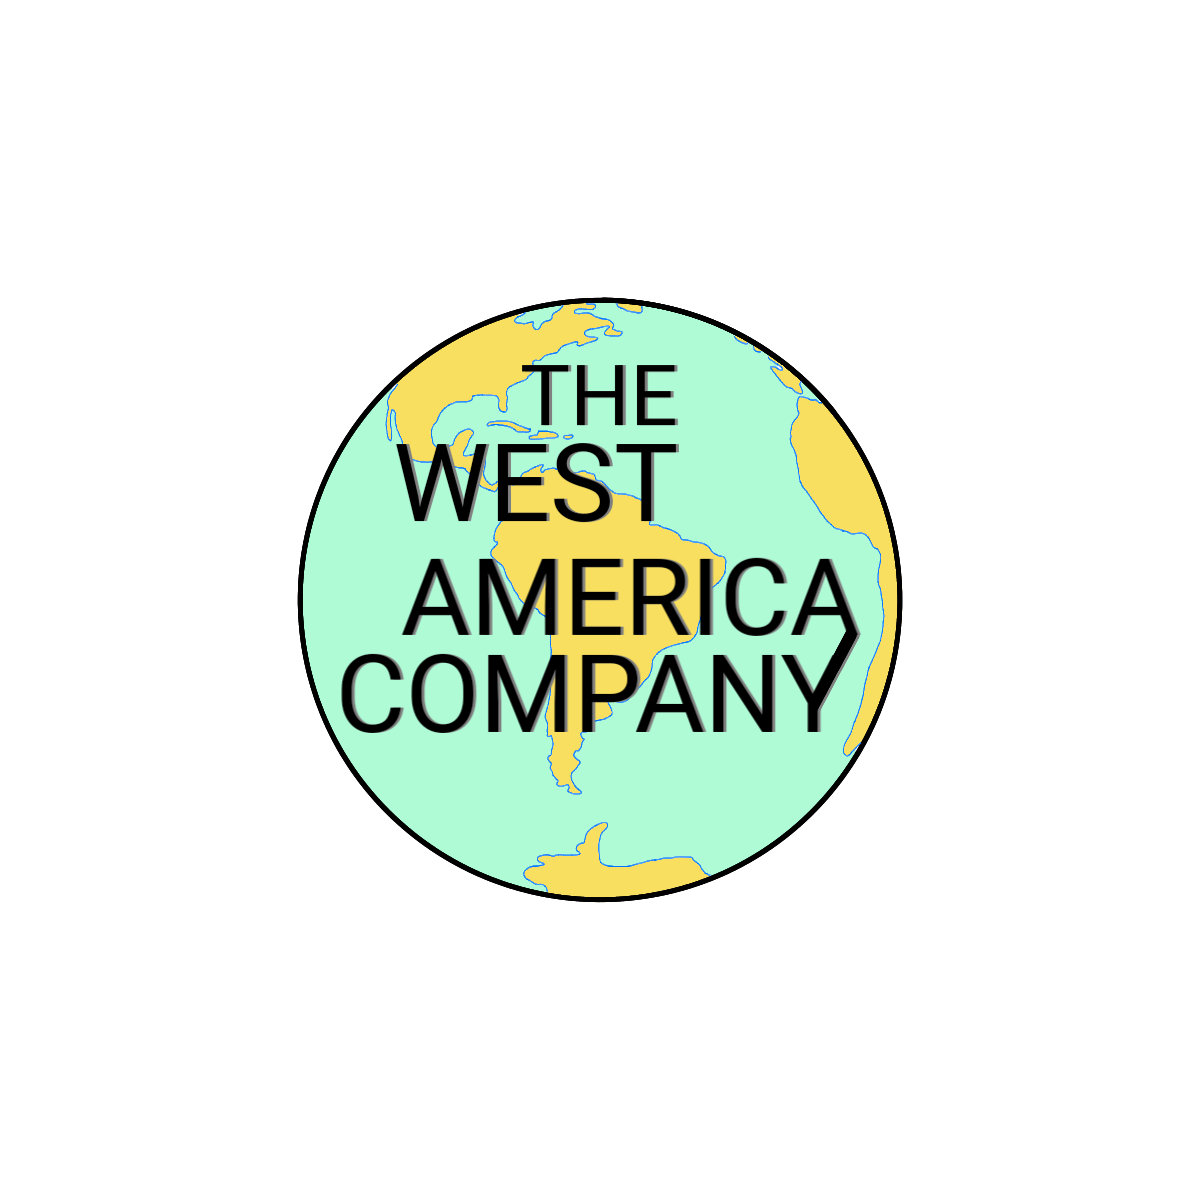 The West America Company